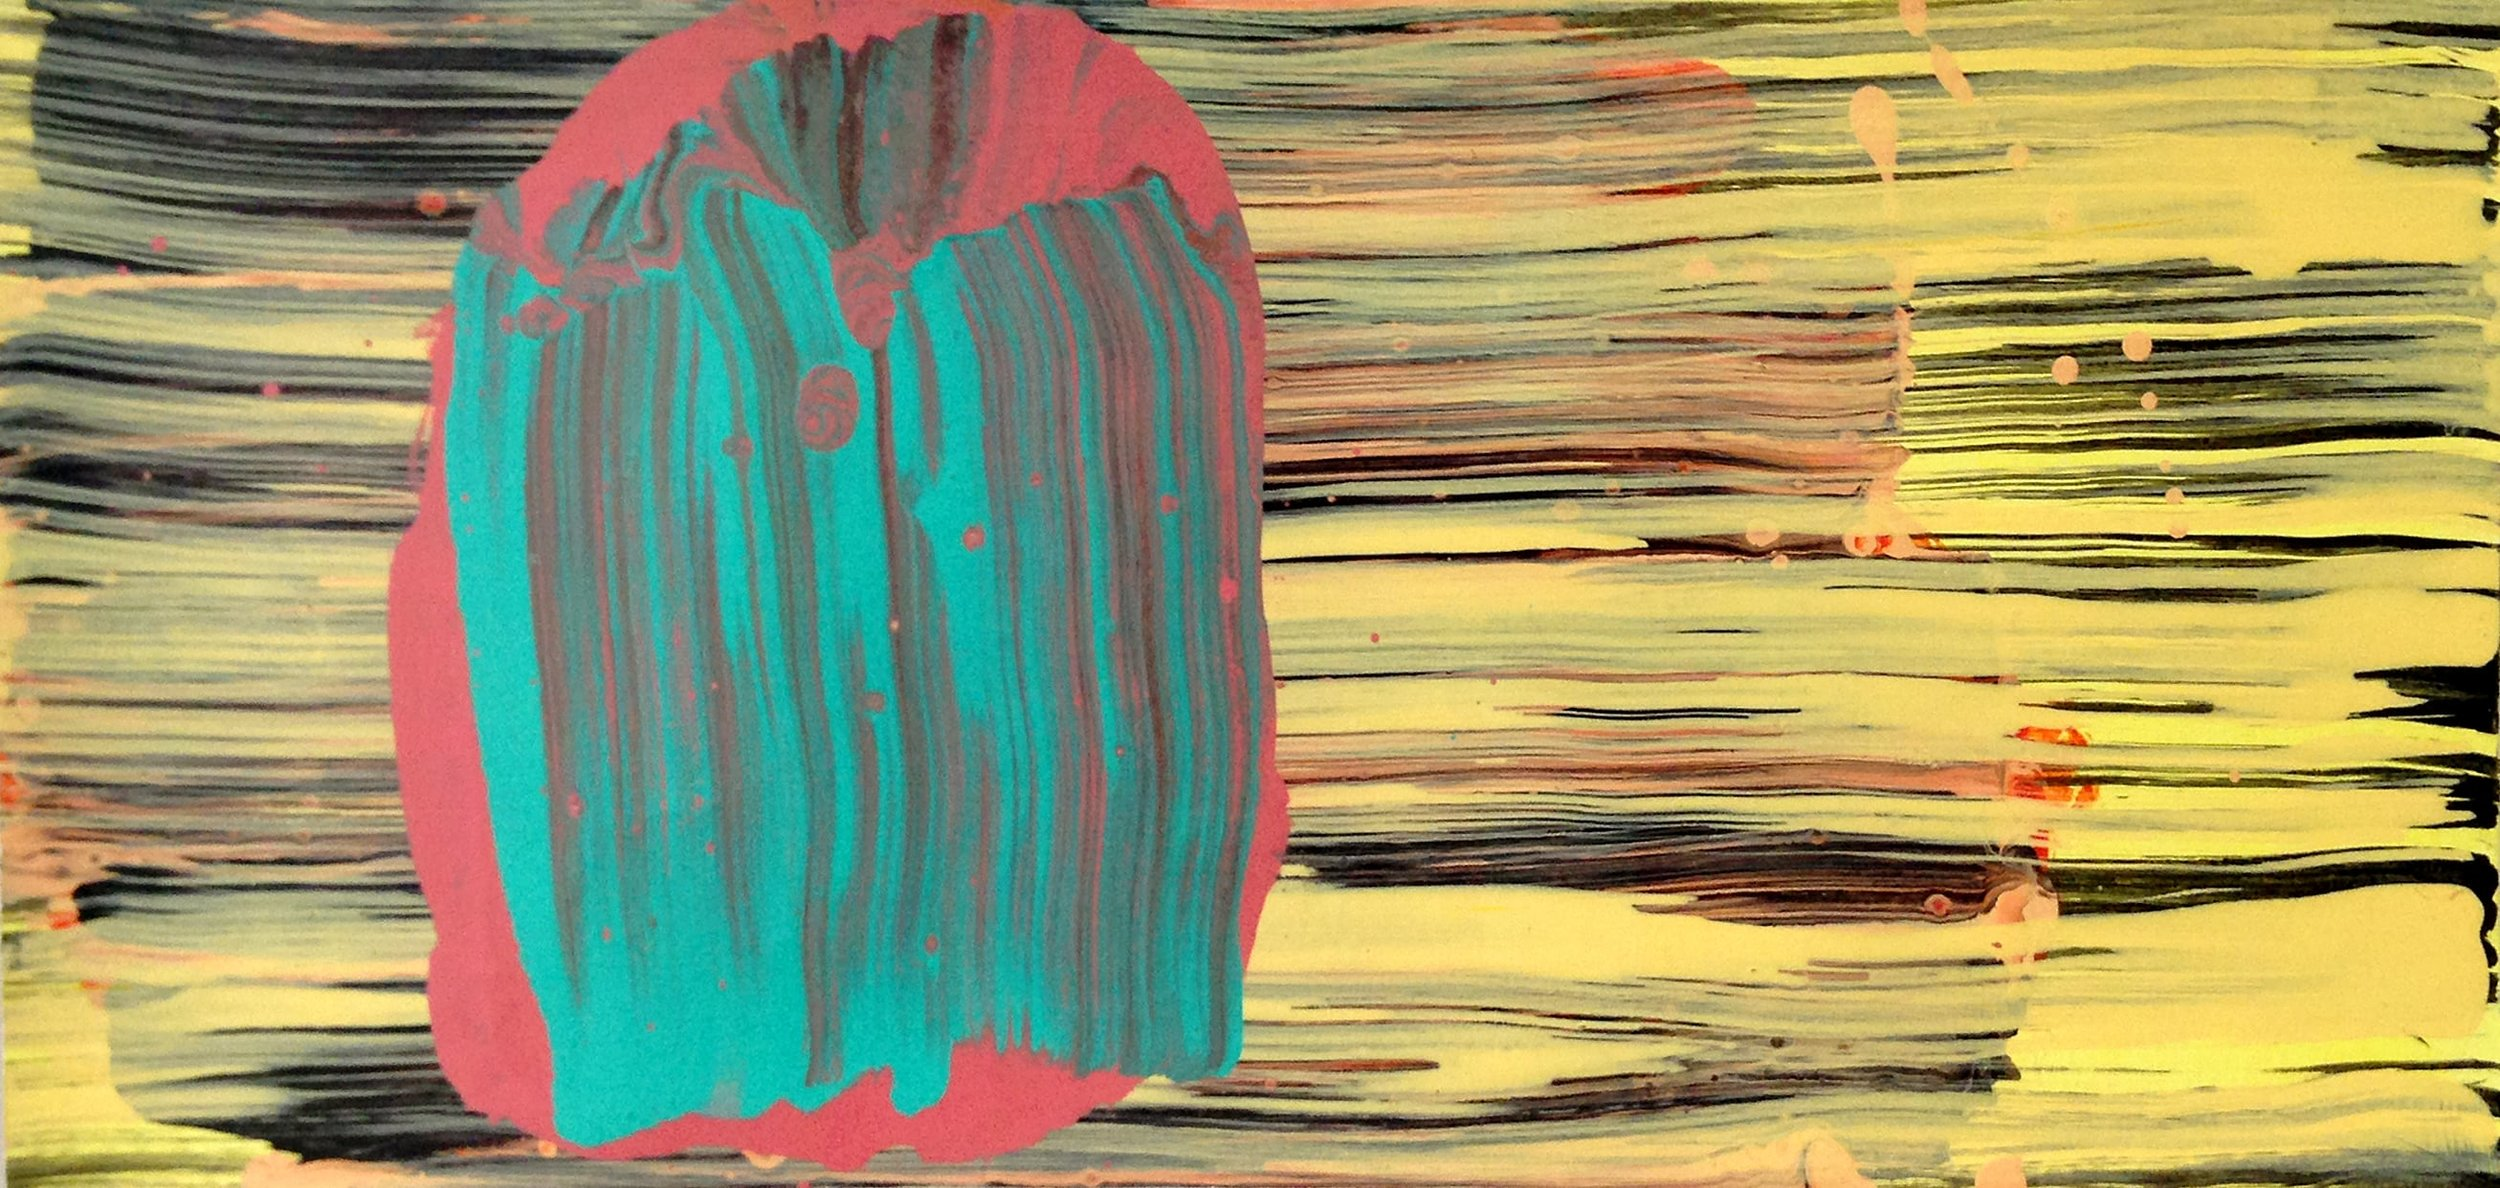 Turquoise Gesture  2016, 15 x 33cm acrylic on paper